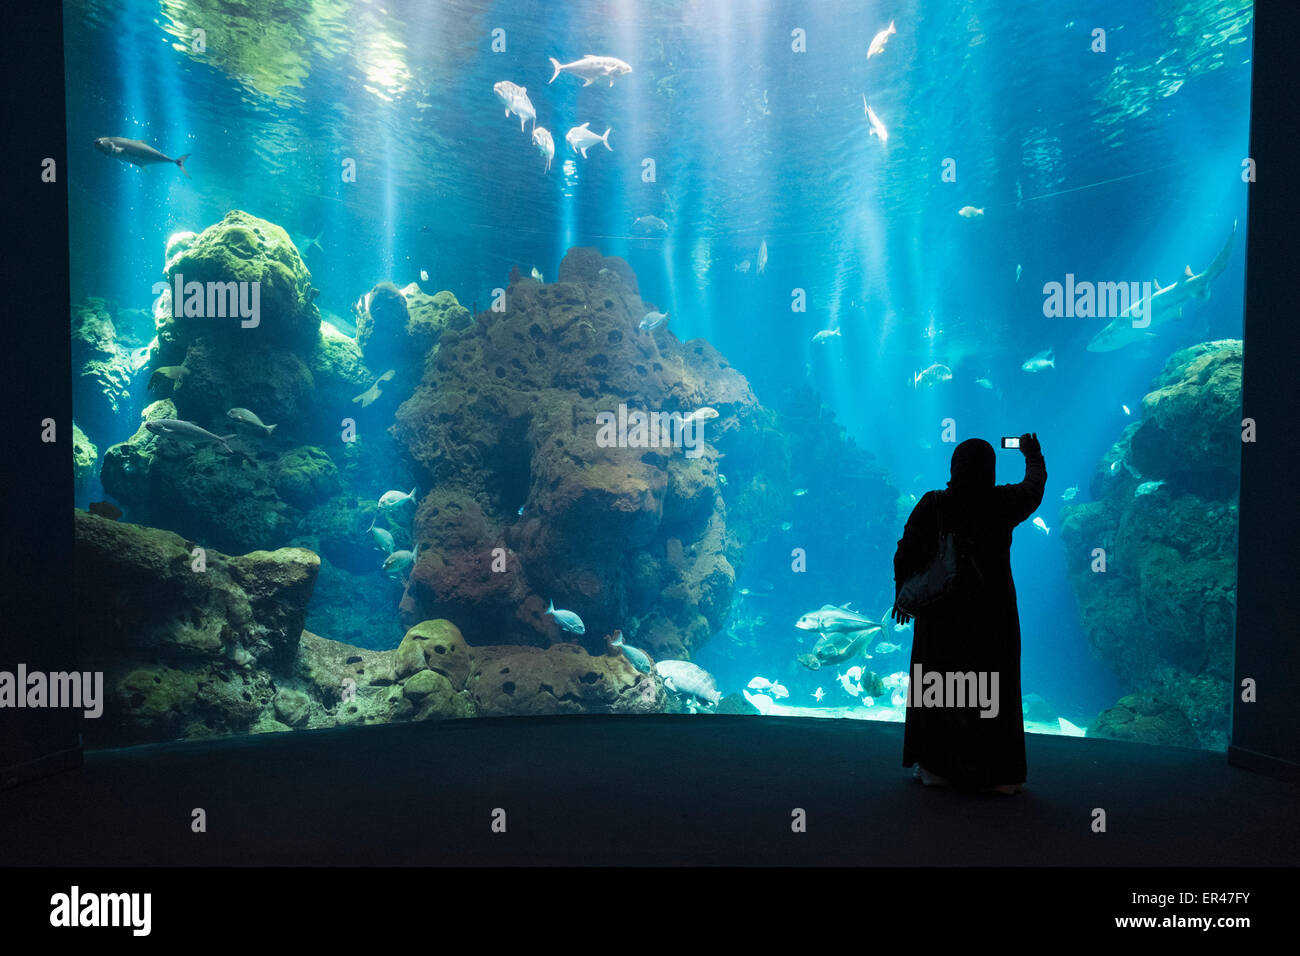 Aquarium at the Scientific Center in Kuwait City, Kuwait. - Stock Image